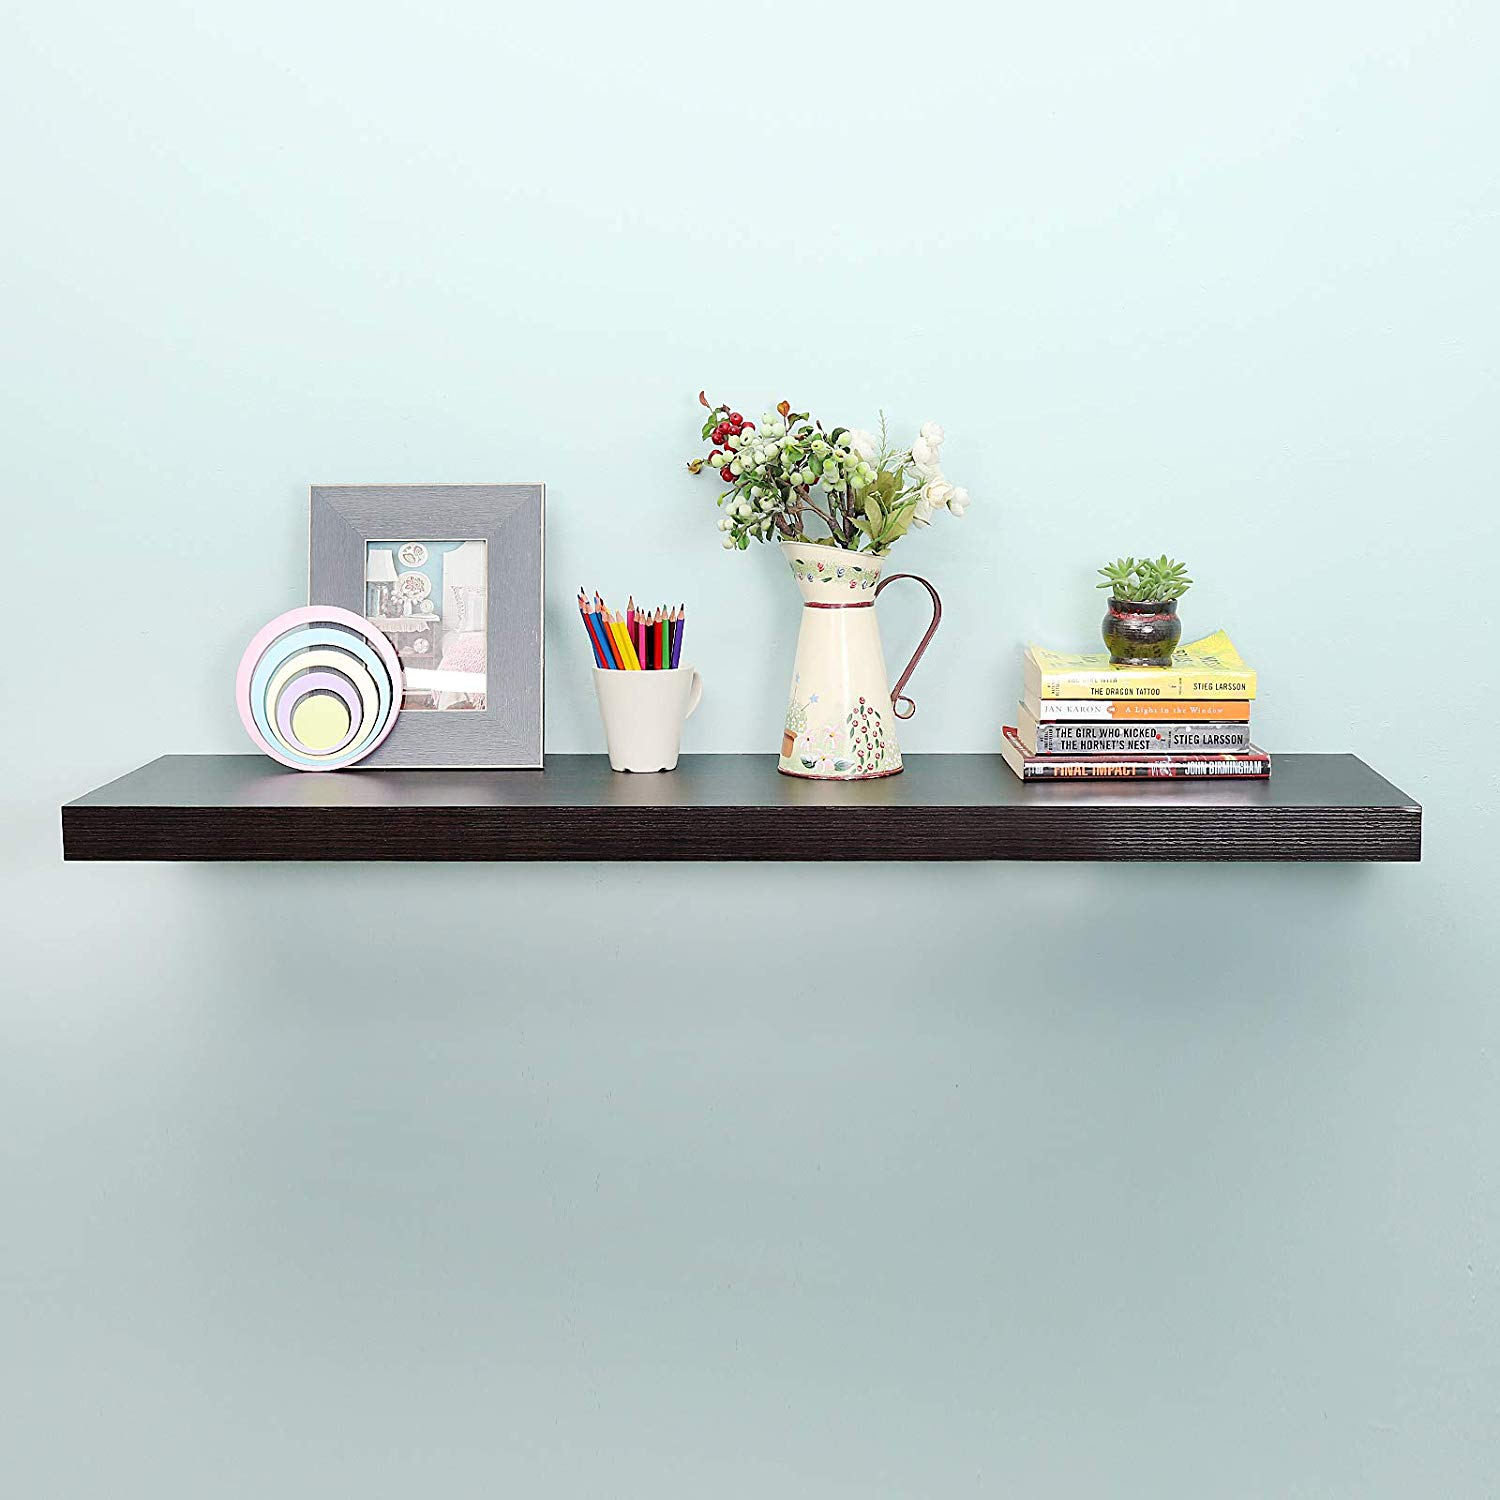 welland deep floating shelves espresso shelf leaning forward deeper than others home kitchen office table with bookshelf industrial shelving systems adhesive make mantel out crown